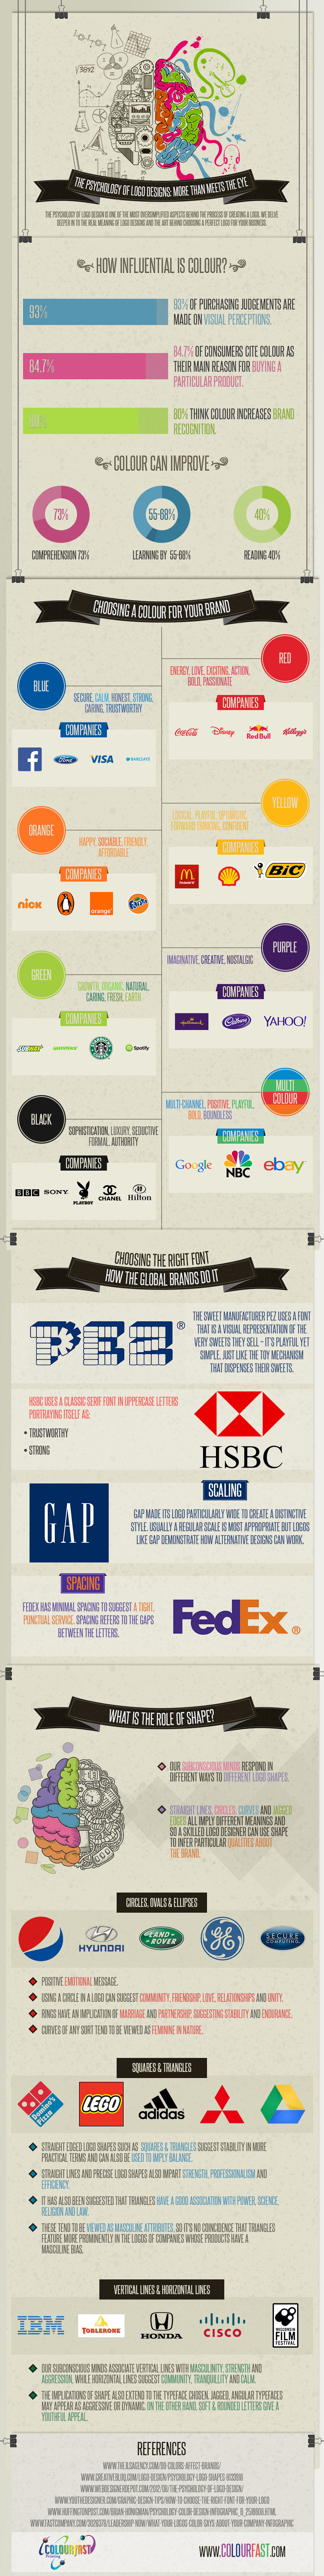 What The Color of Your Logo Says About Your Business